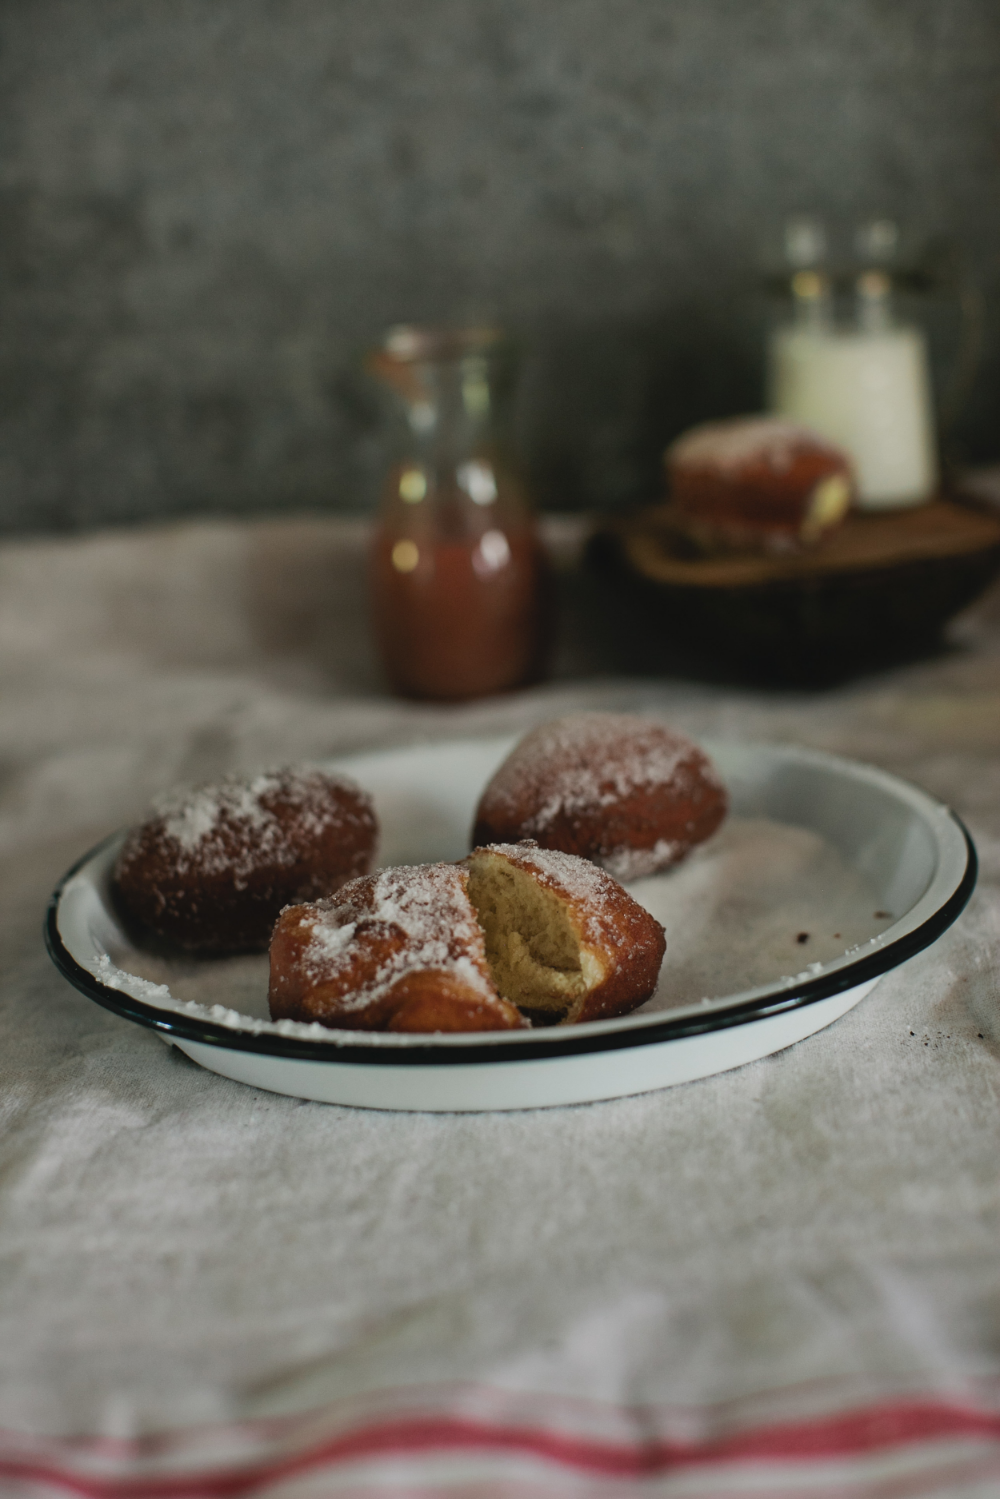 Rhubarb Custard Filled Donuts by The Midwestival